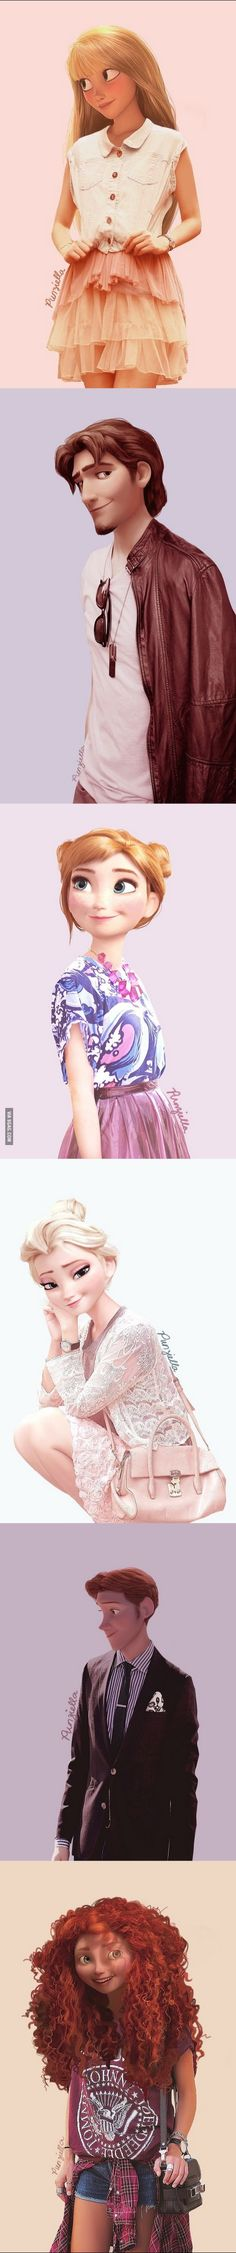 What Disney characters would look like in modern clothing. I am in love with Anna and Elsa!